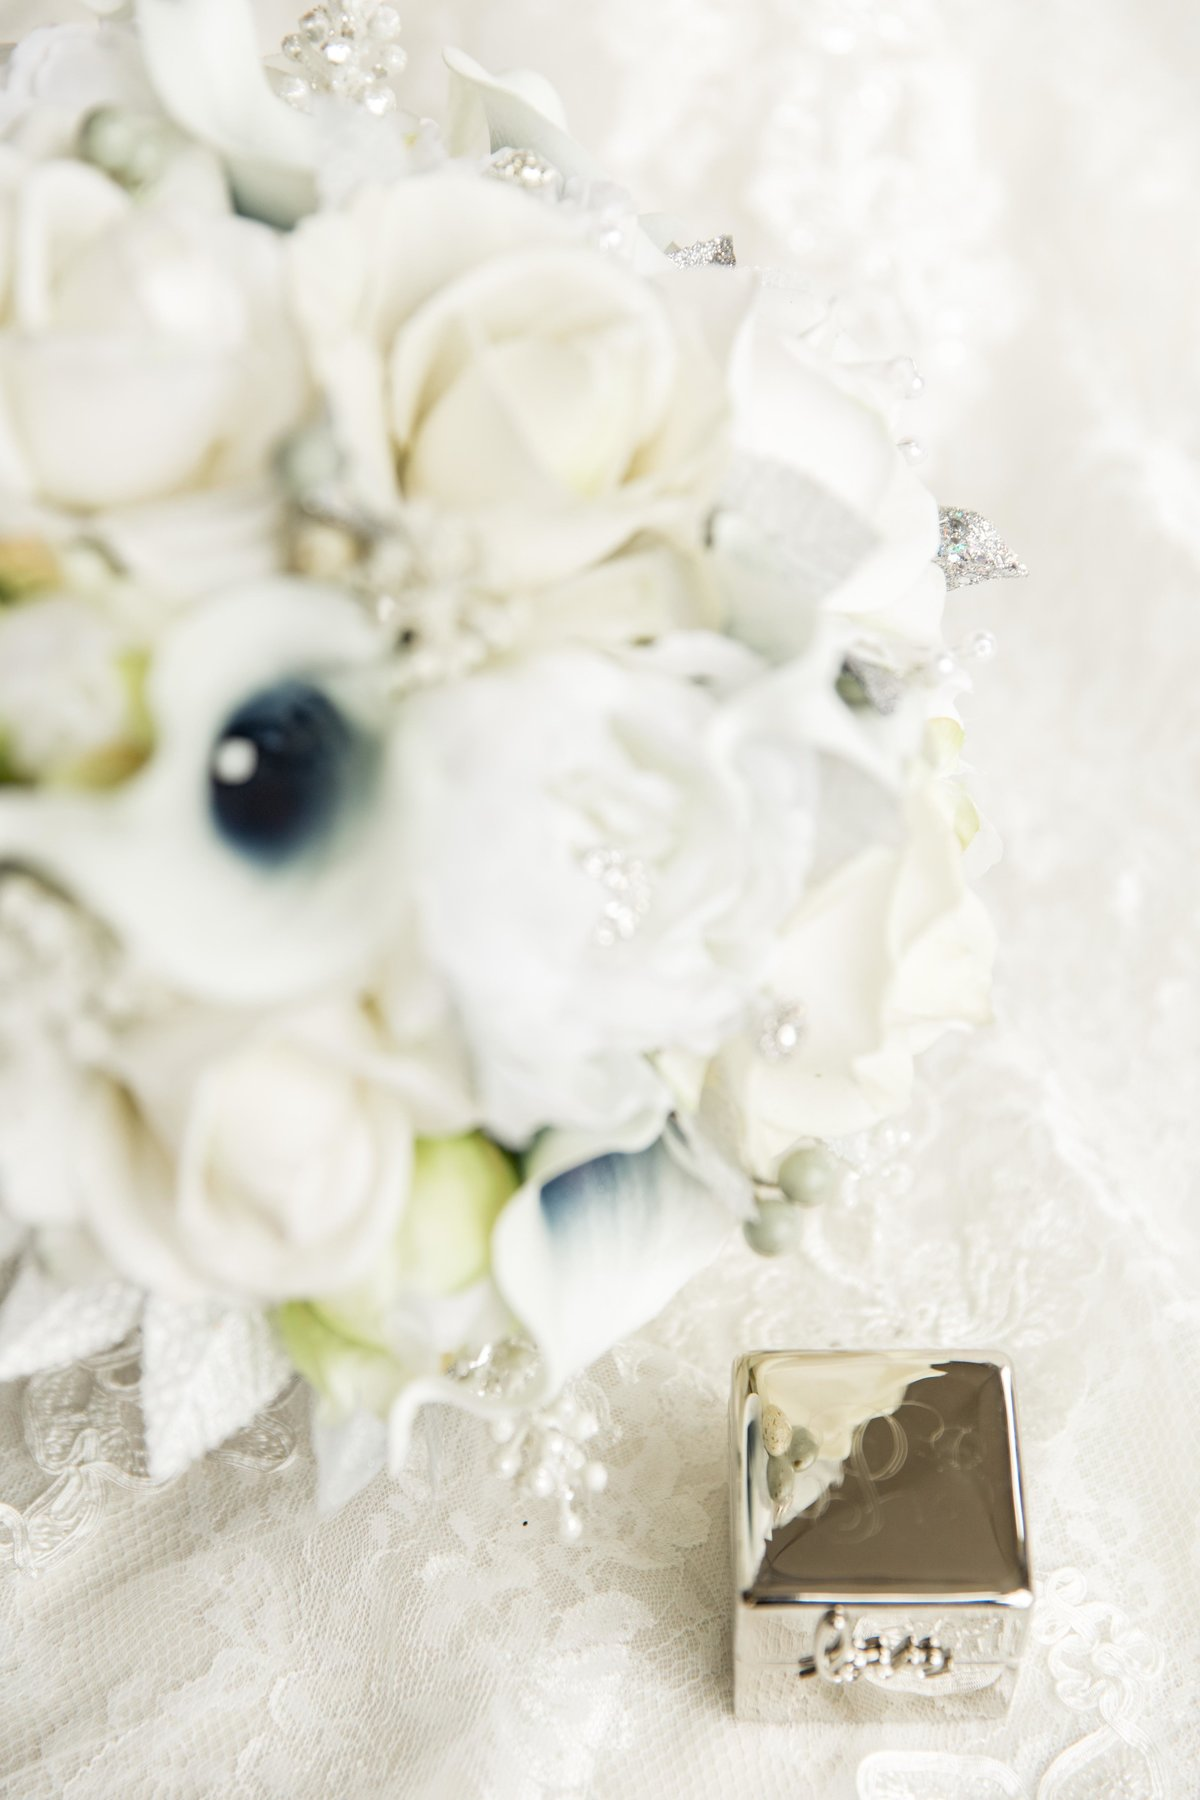 Hannah-Barlow-Photography-Wedding-Details_004